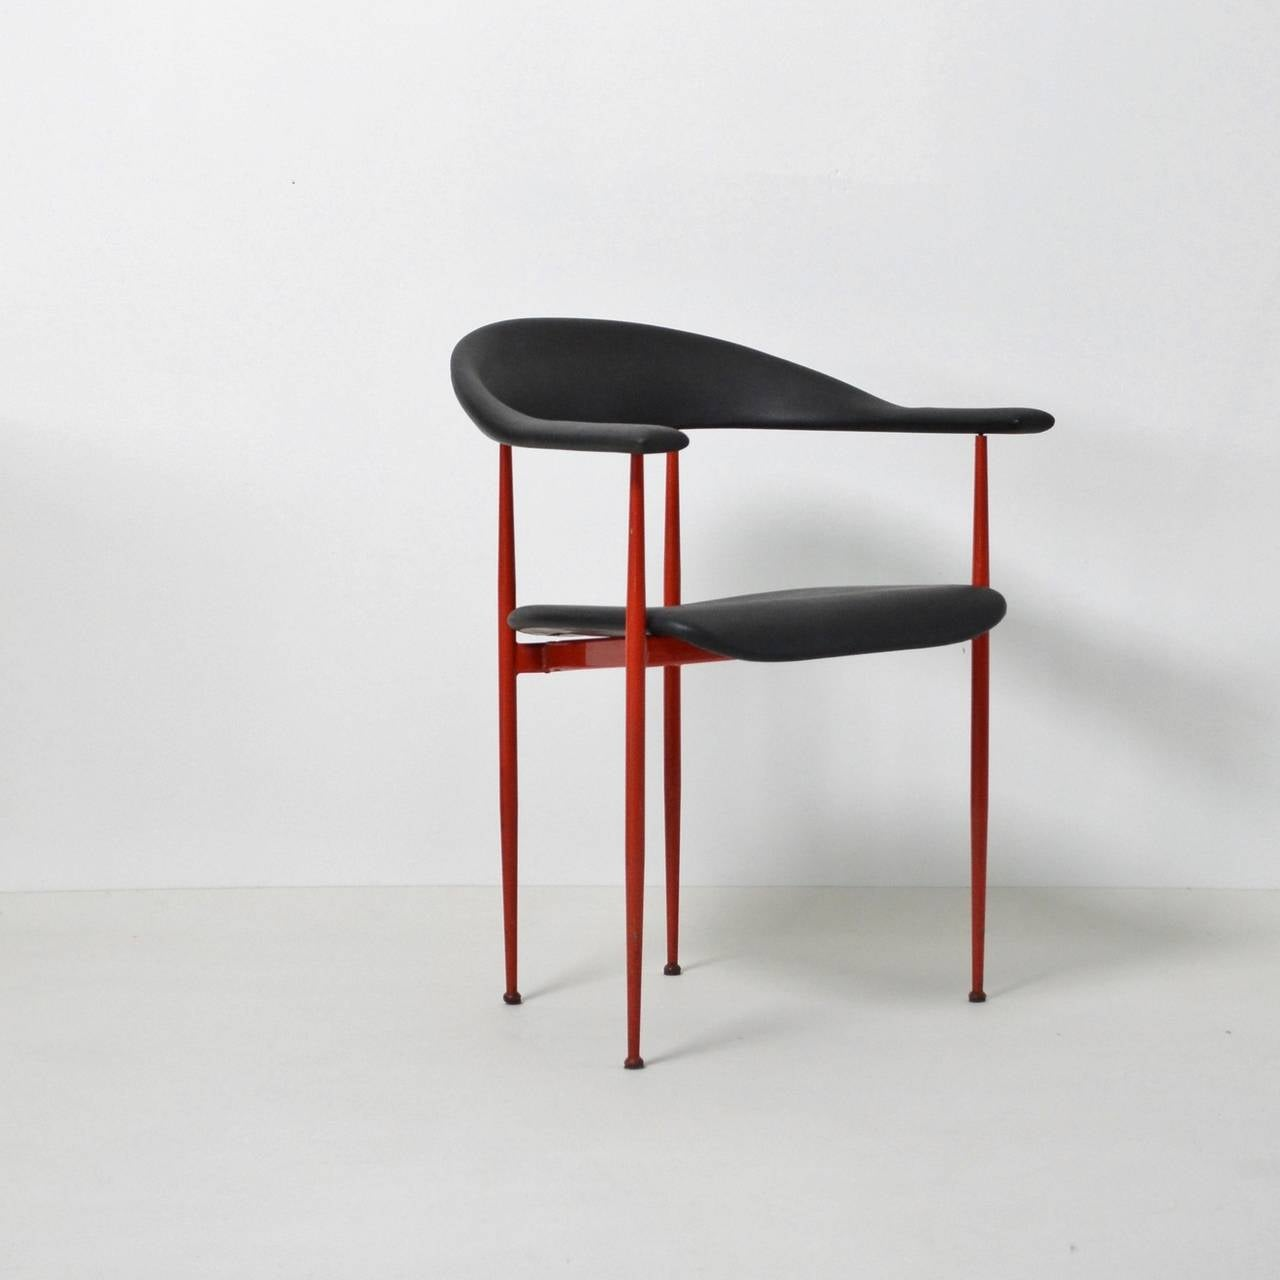 Giancarlo Vegni P70 Postmodern Chair at 1stdibs